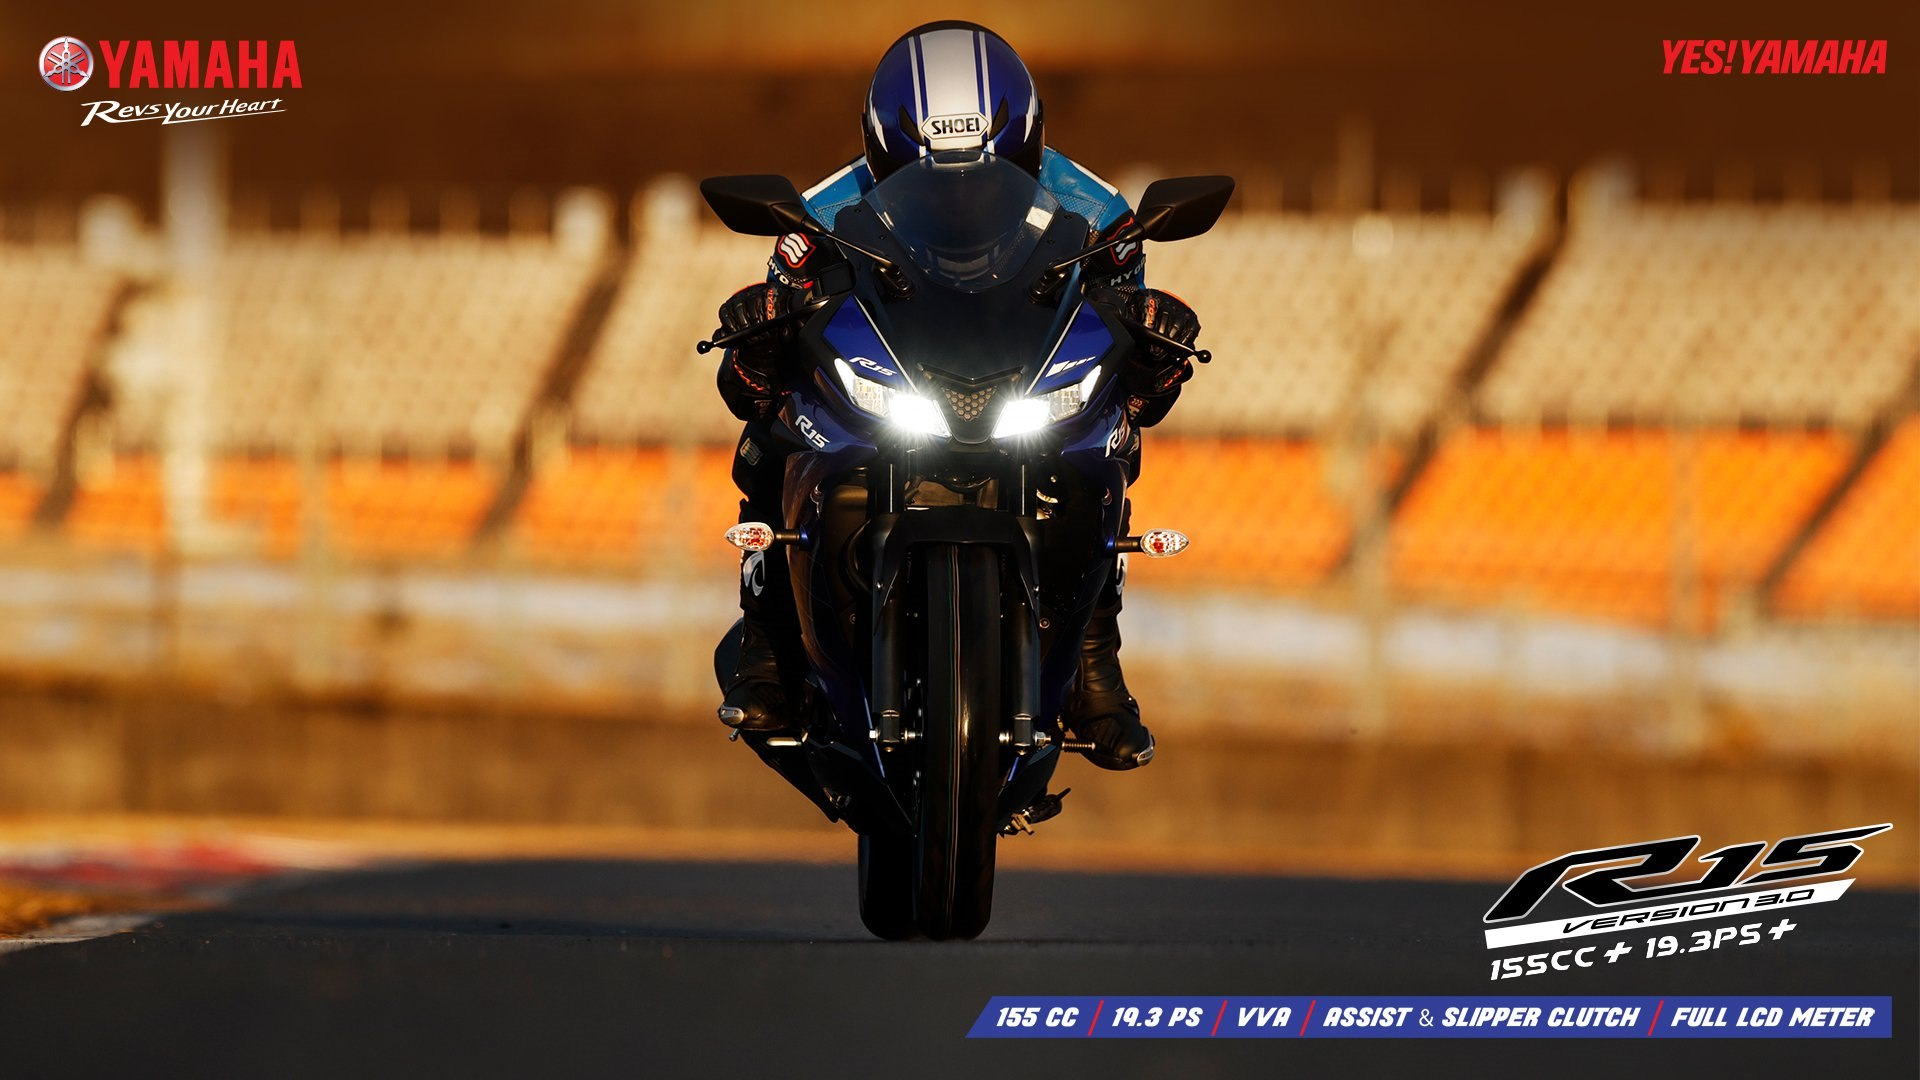 Maharashtra now has 41 Yamaha dealerships